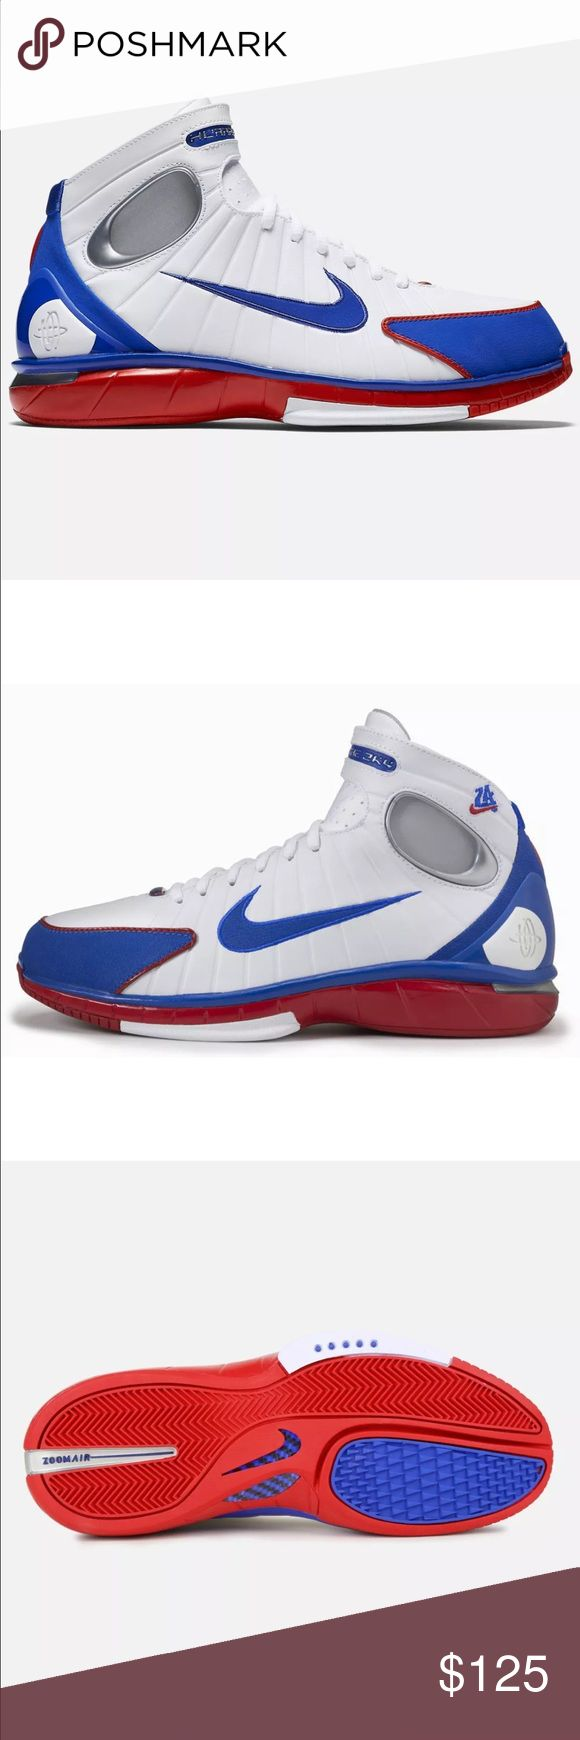 Nike Air Zoom Huarache 2k4 Basketball Shies Sz 11 Brand New in Box, Never worn! A mixture of the best technology from the past, present and future come together to create the ultimate basketball shoe. Nike Shoes Athletic Shoes